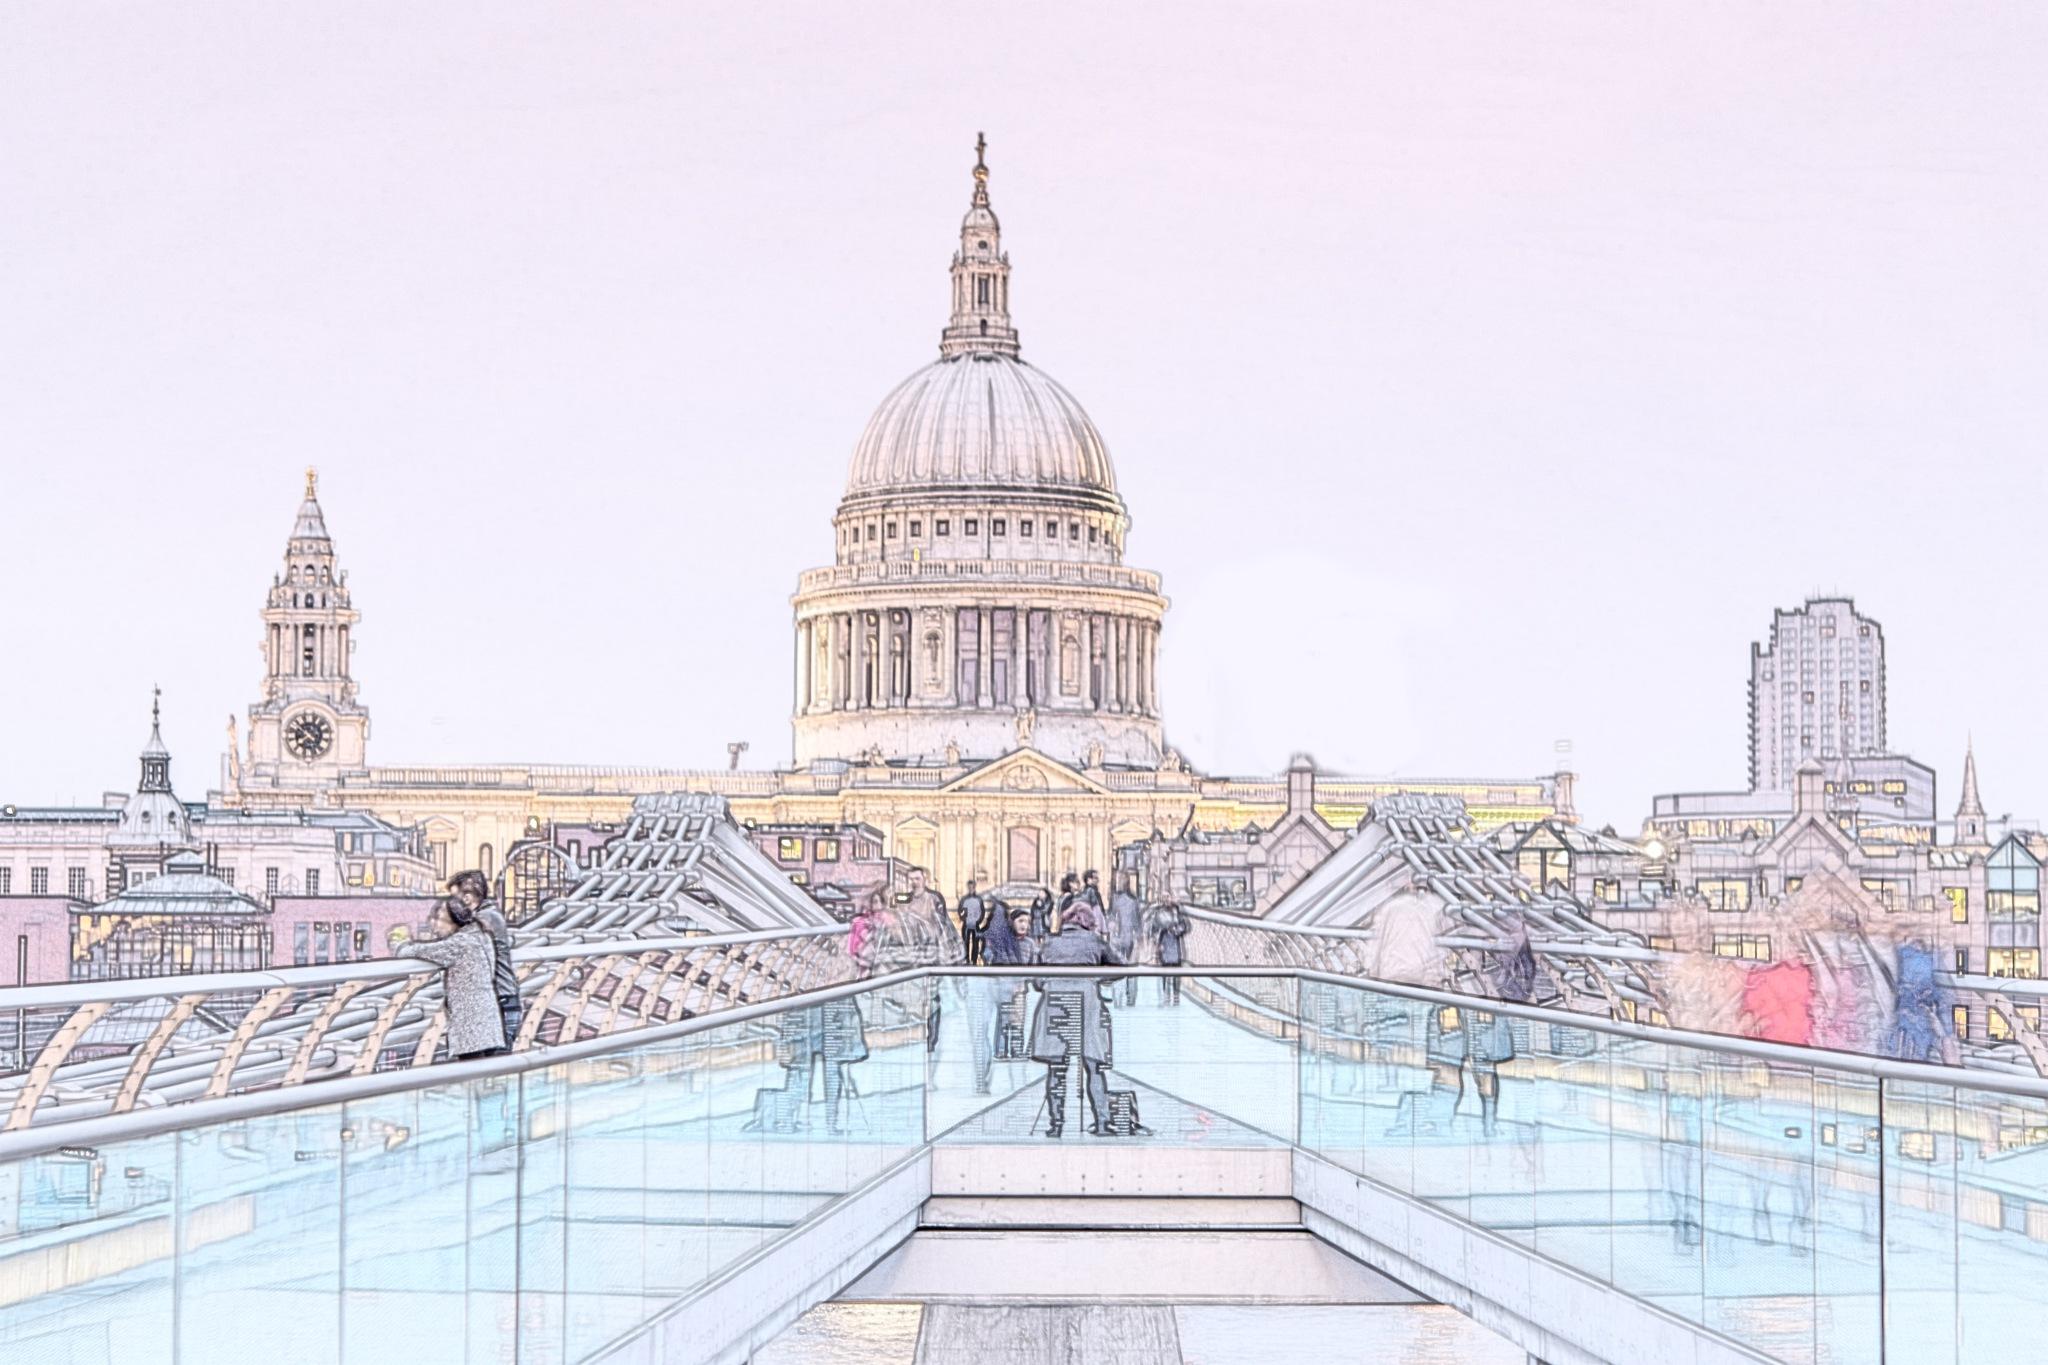 St Pauls Cathedral & The Millennium Bridge by Jim Obee